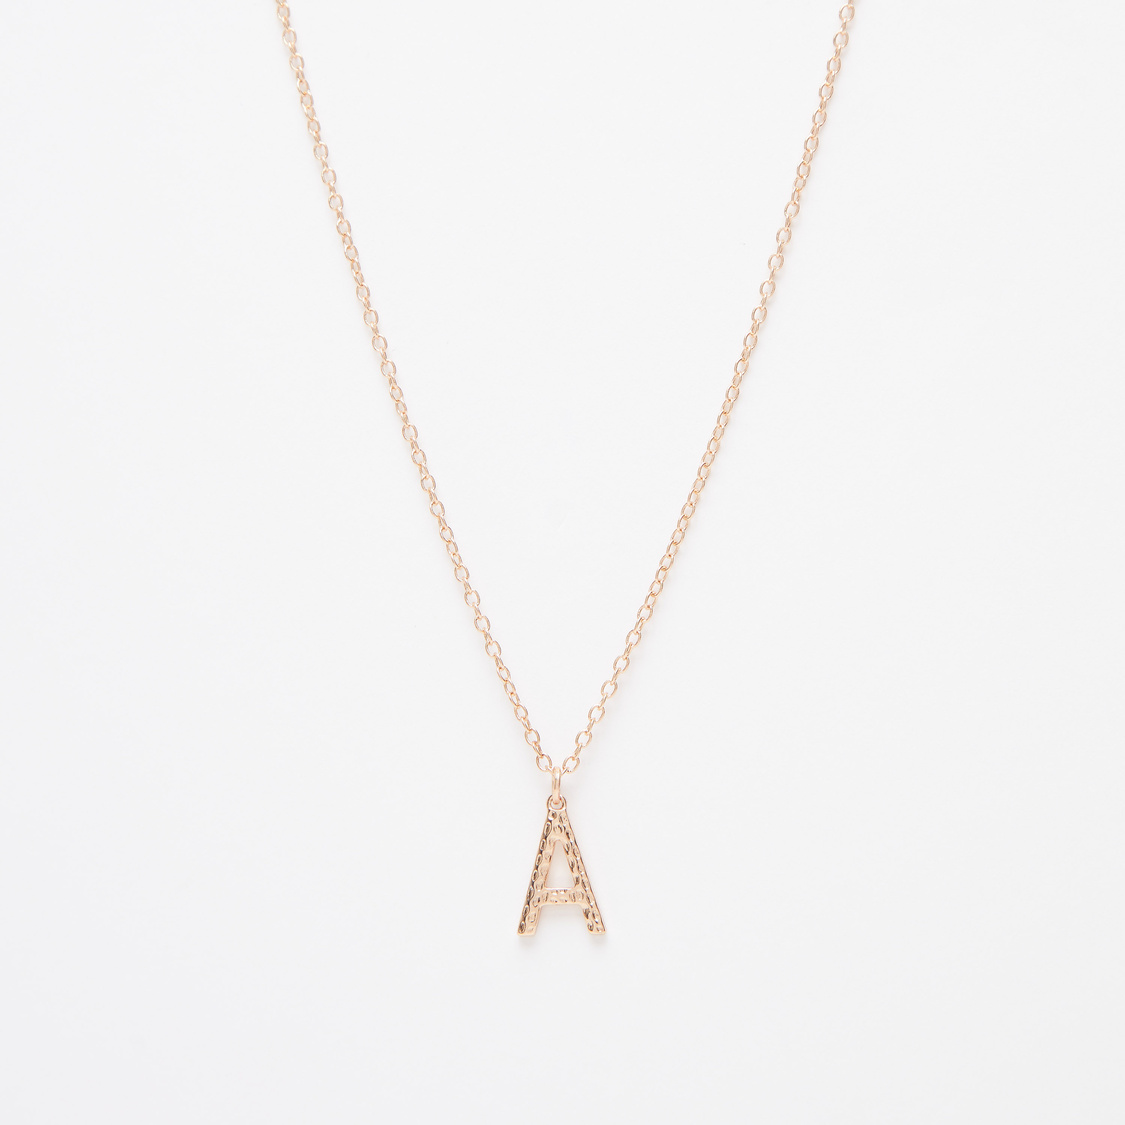 Multi-Layered Necklace with Alphabet Accents and Lobster Clasp Closure